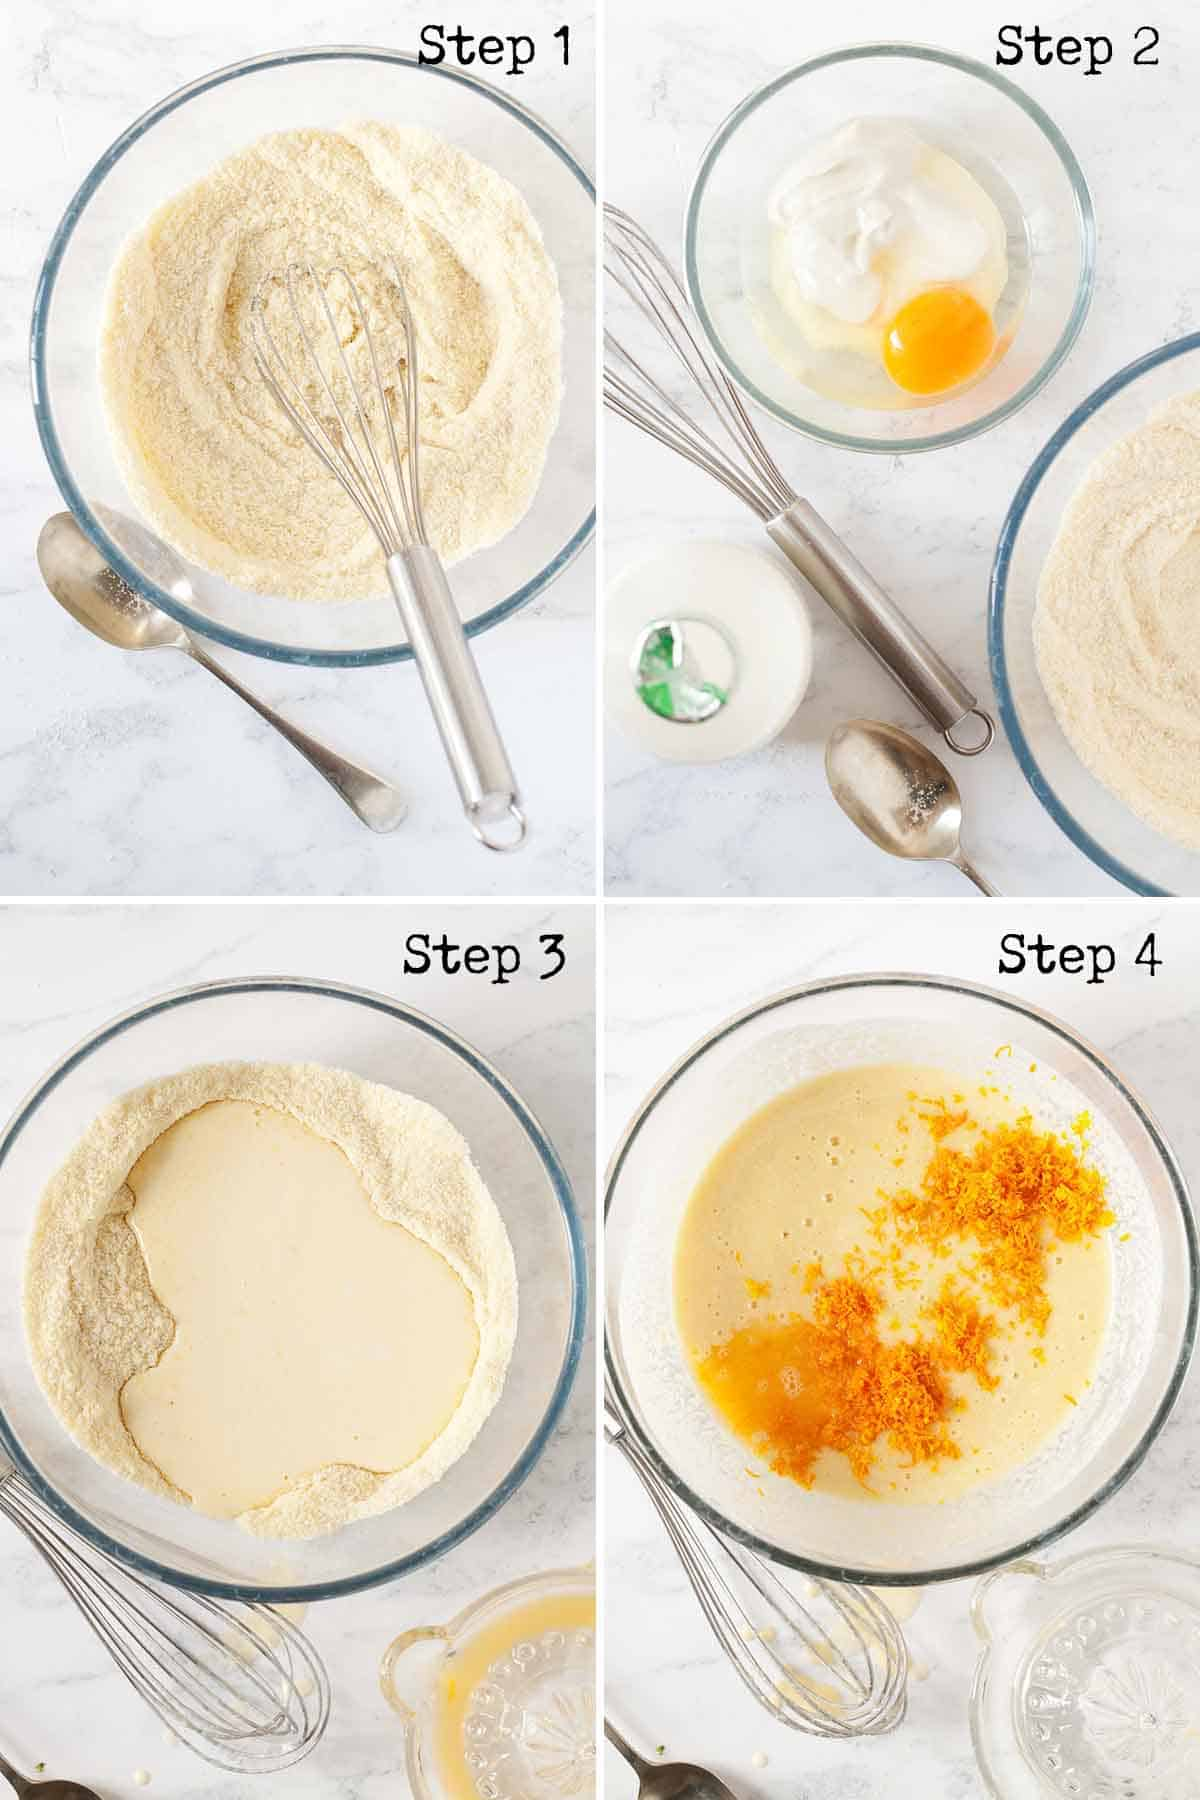 Collage of images showing a flourless cake being made